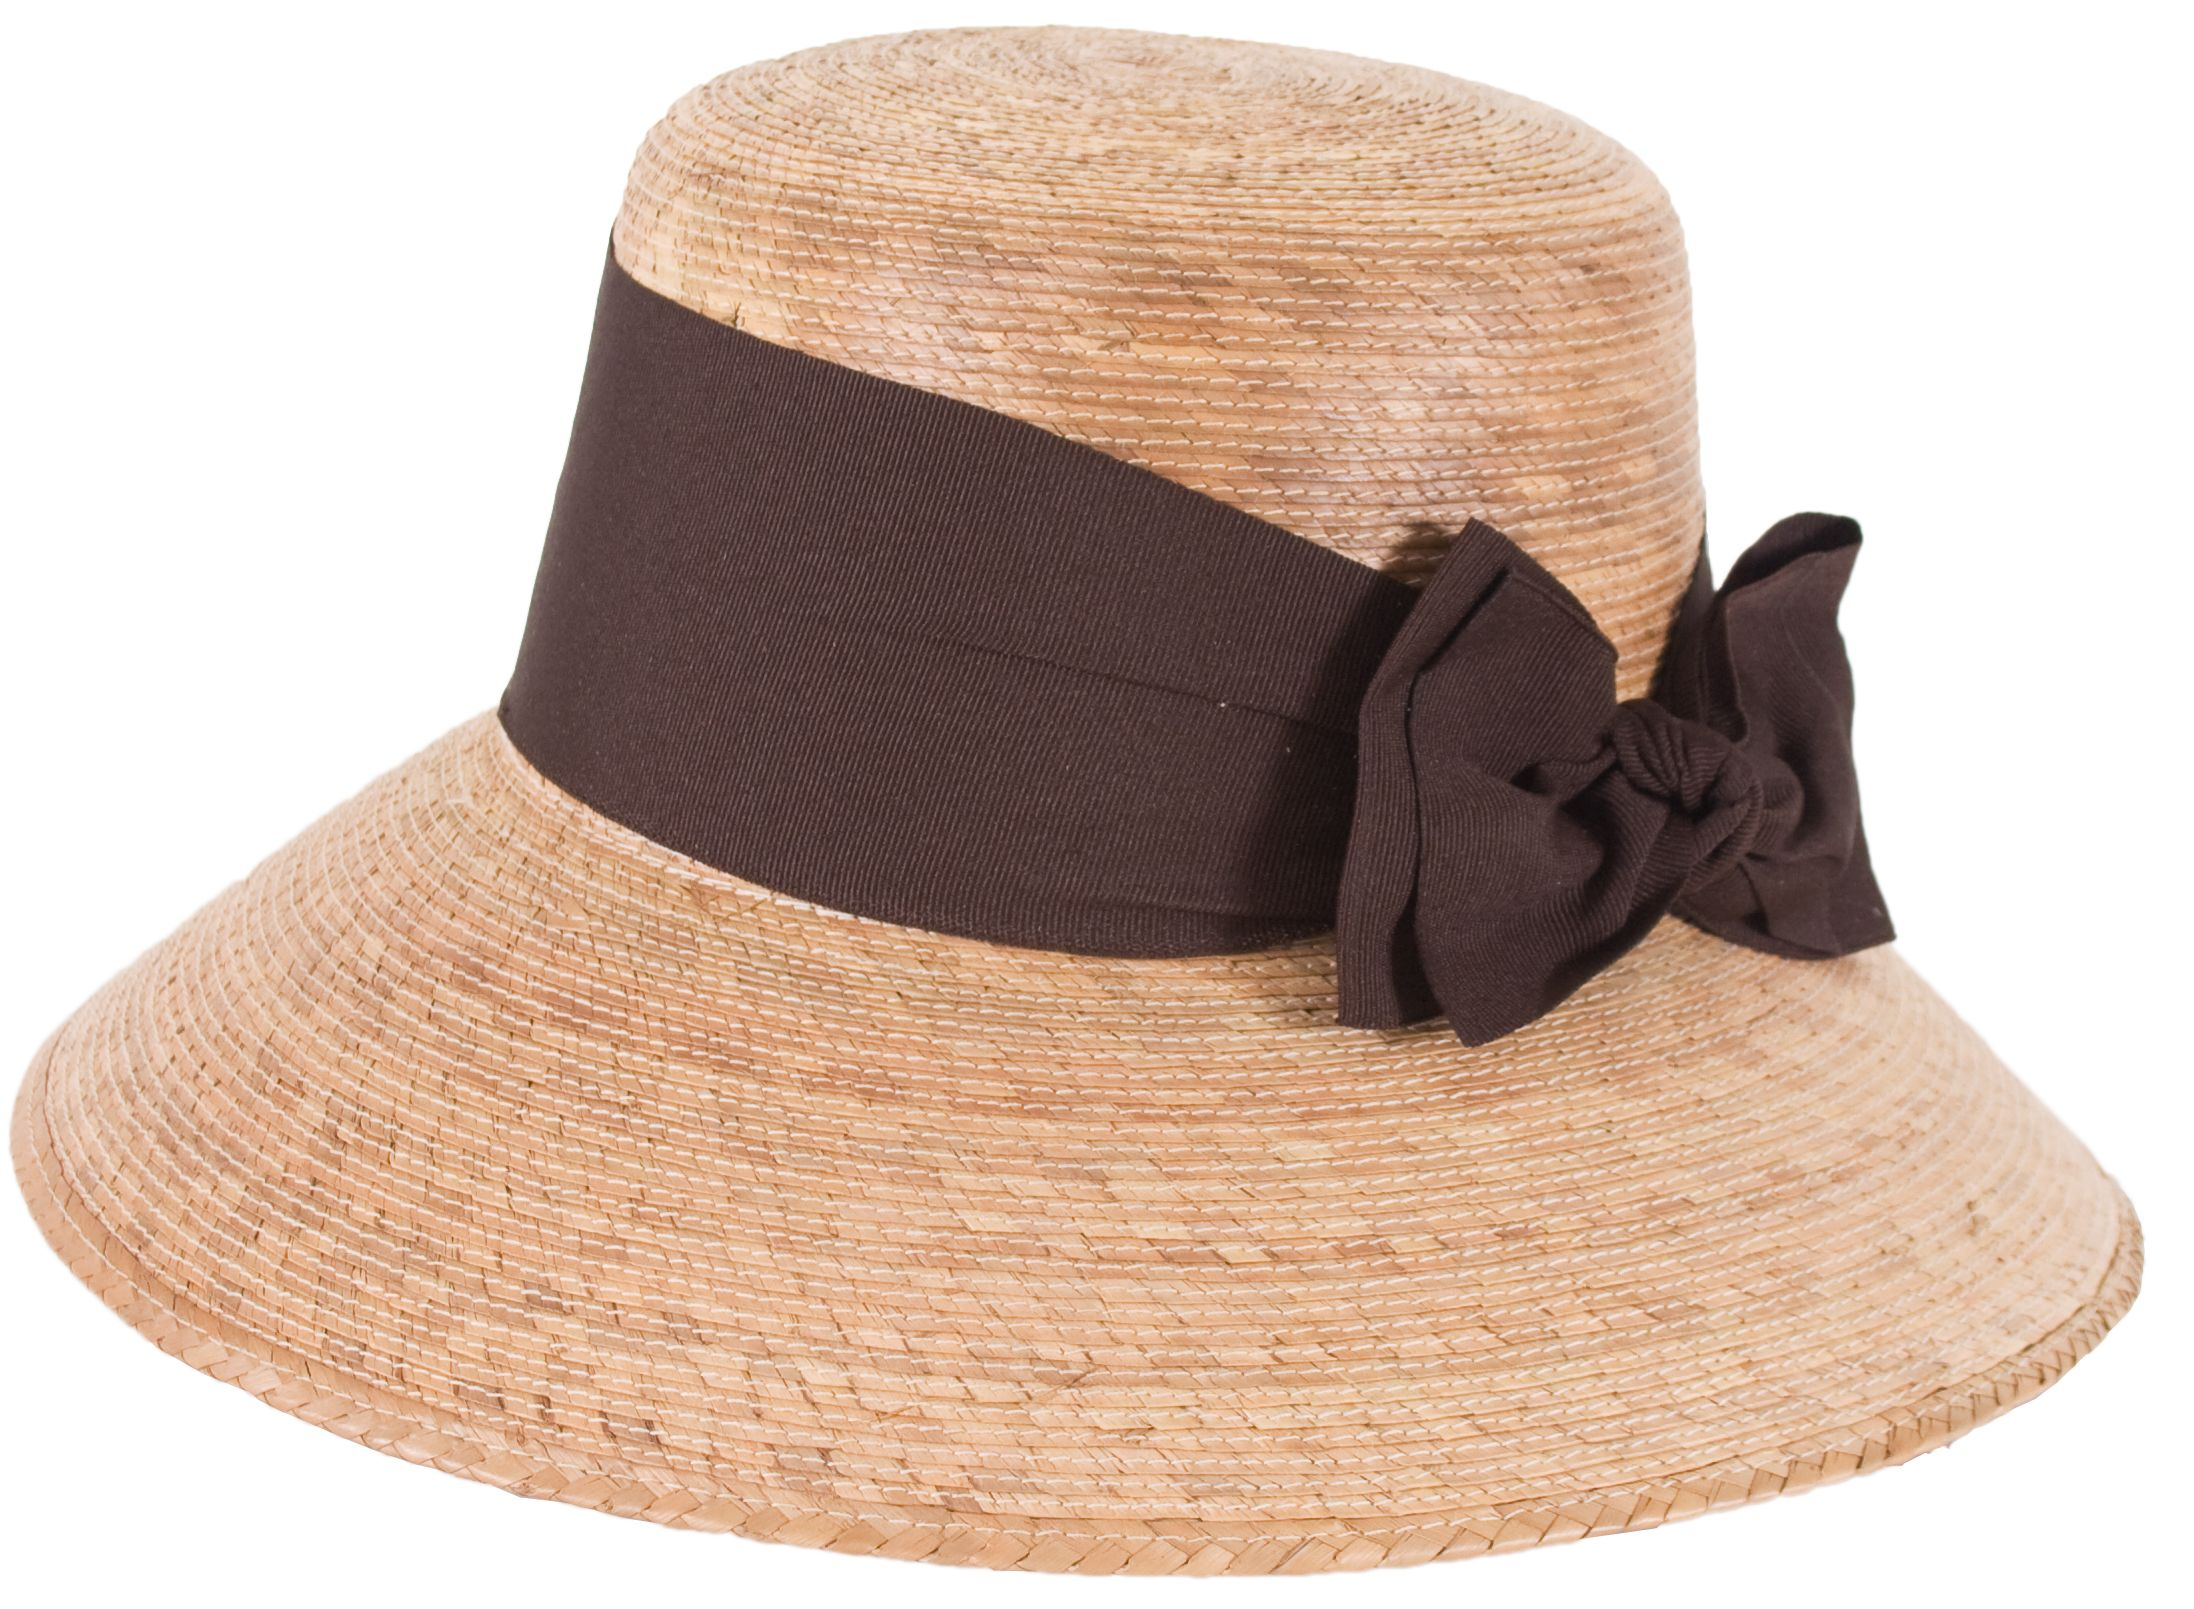 a162be6d New Authentic 81738 624D1 Tula Hats Gardener Lattice Palm Straw Wide